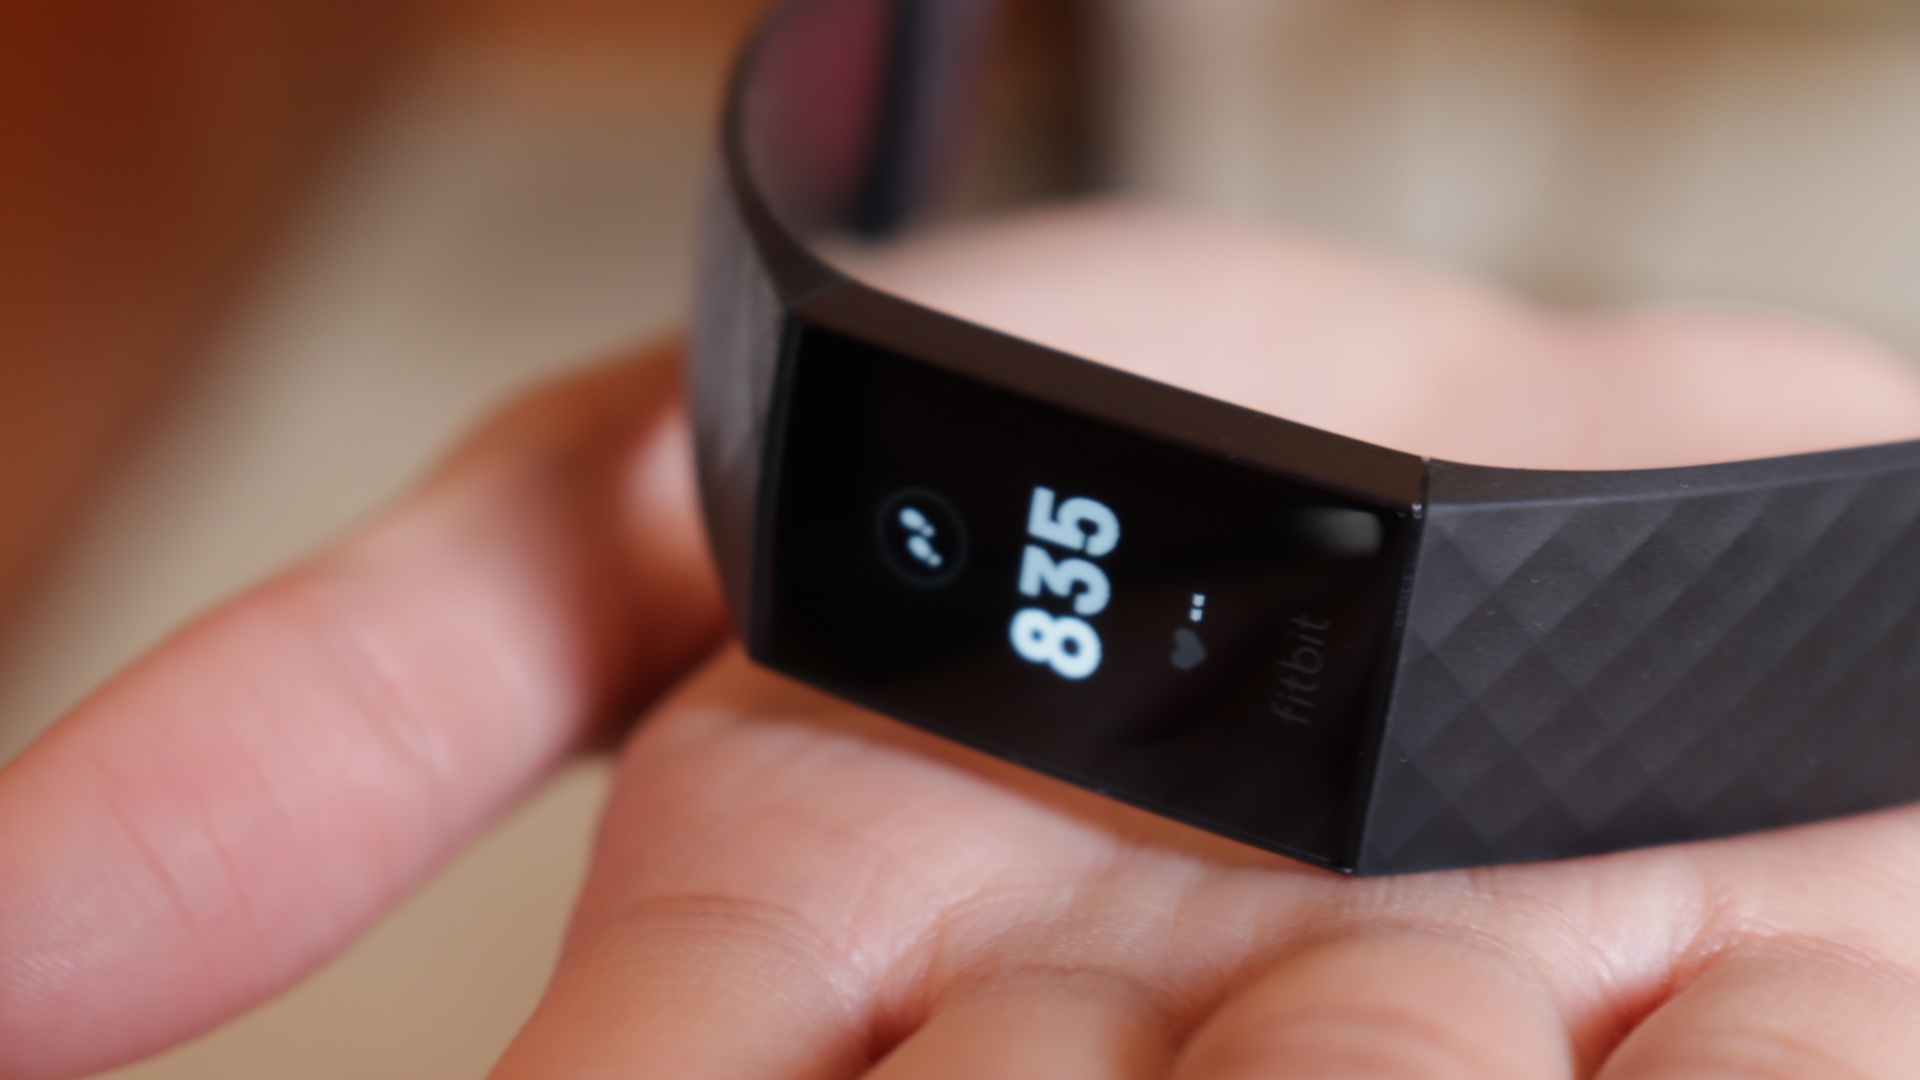 EU regulators taking closer look at Google's $2.1 billion acquisition of Fitbit - htxt.africa